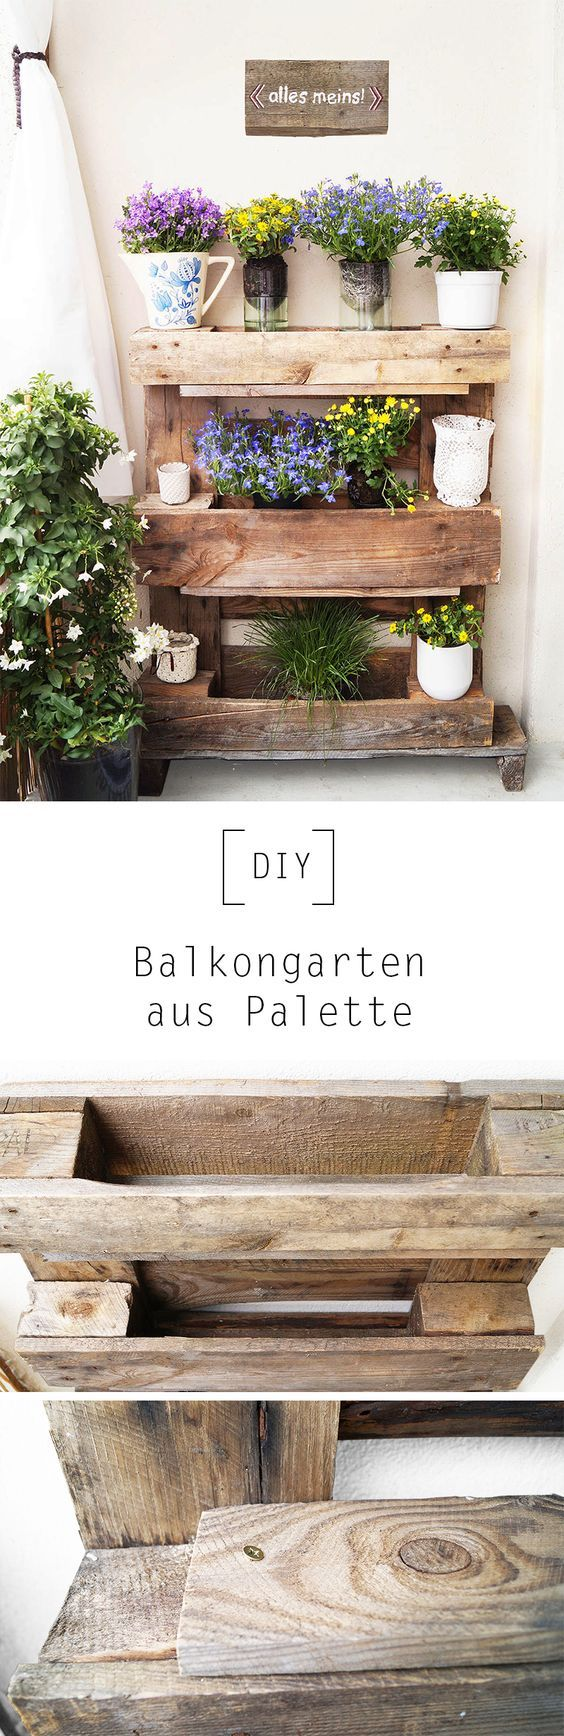 balkongarten aus palette by nur noch diy anleitung basteln pinterest balkongarten diy. Black Bedroom Furniture Sets. Home Design Ideas